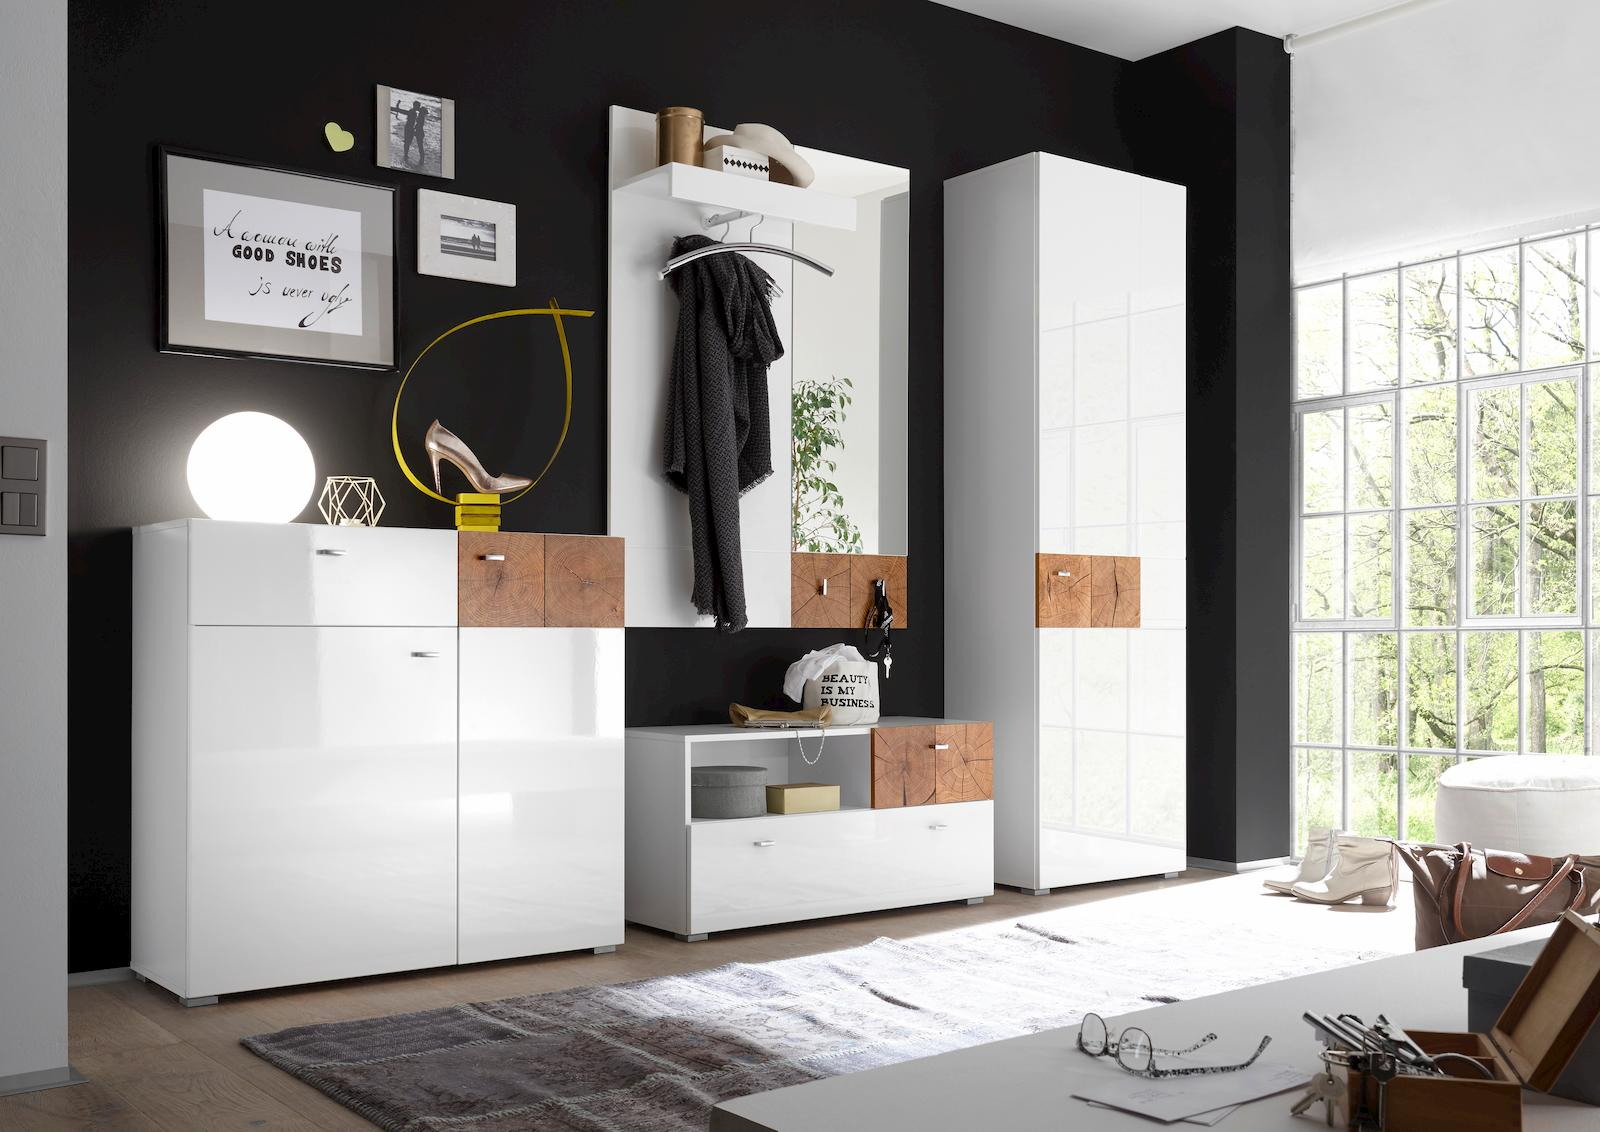 forest garderobenschrank garderobe dielenschrank flurgarderobe wei hochglanz ebay. Black Bedroom Furniture Sets. Home Design Ideas